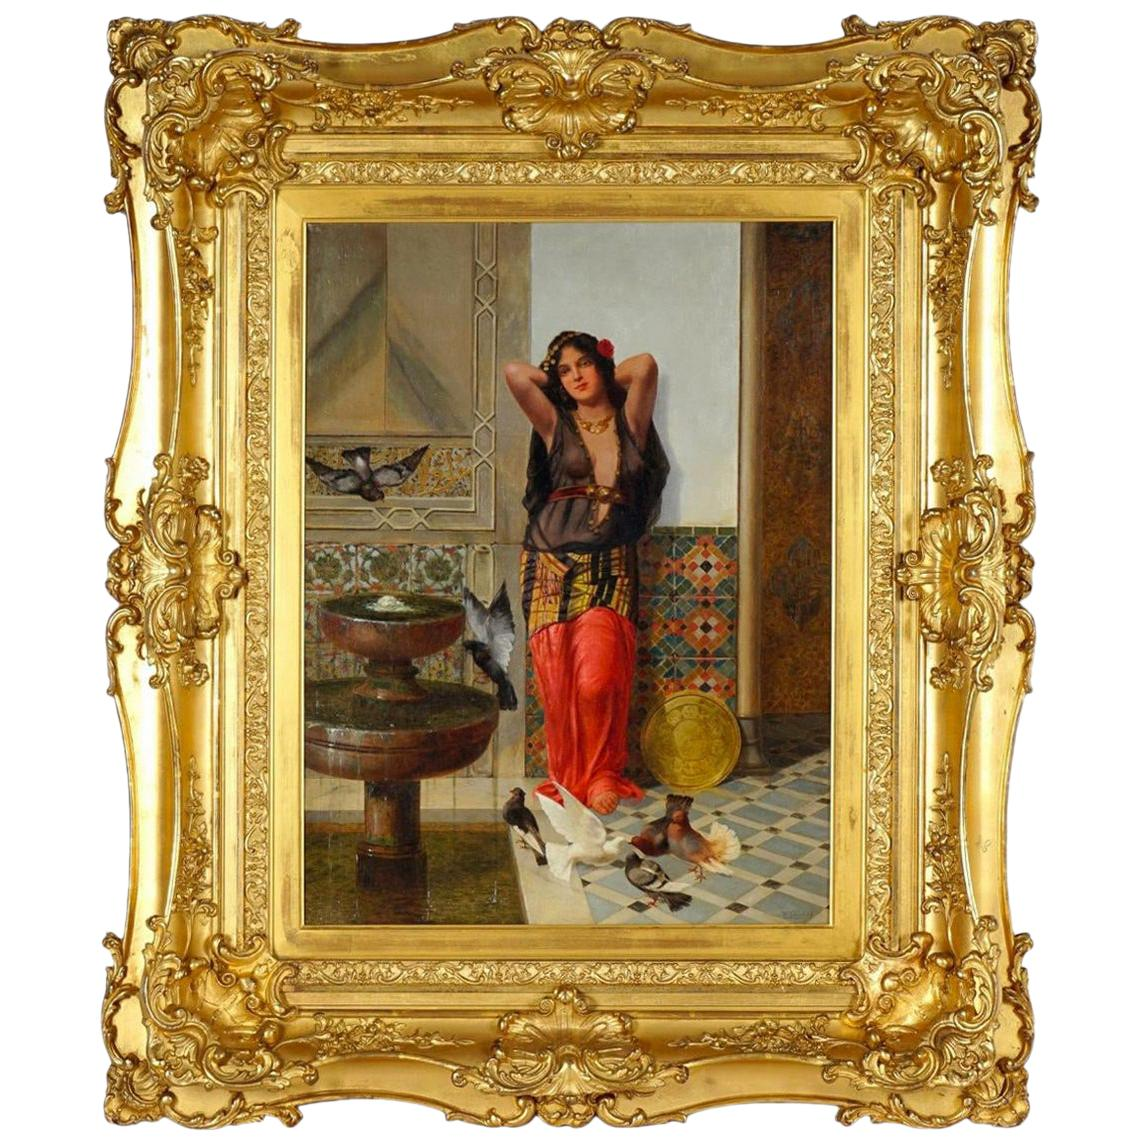 Harem Woman by Vincent Stiepevich, Signed Orientalist Oil Painting